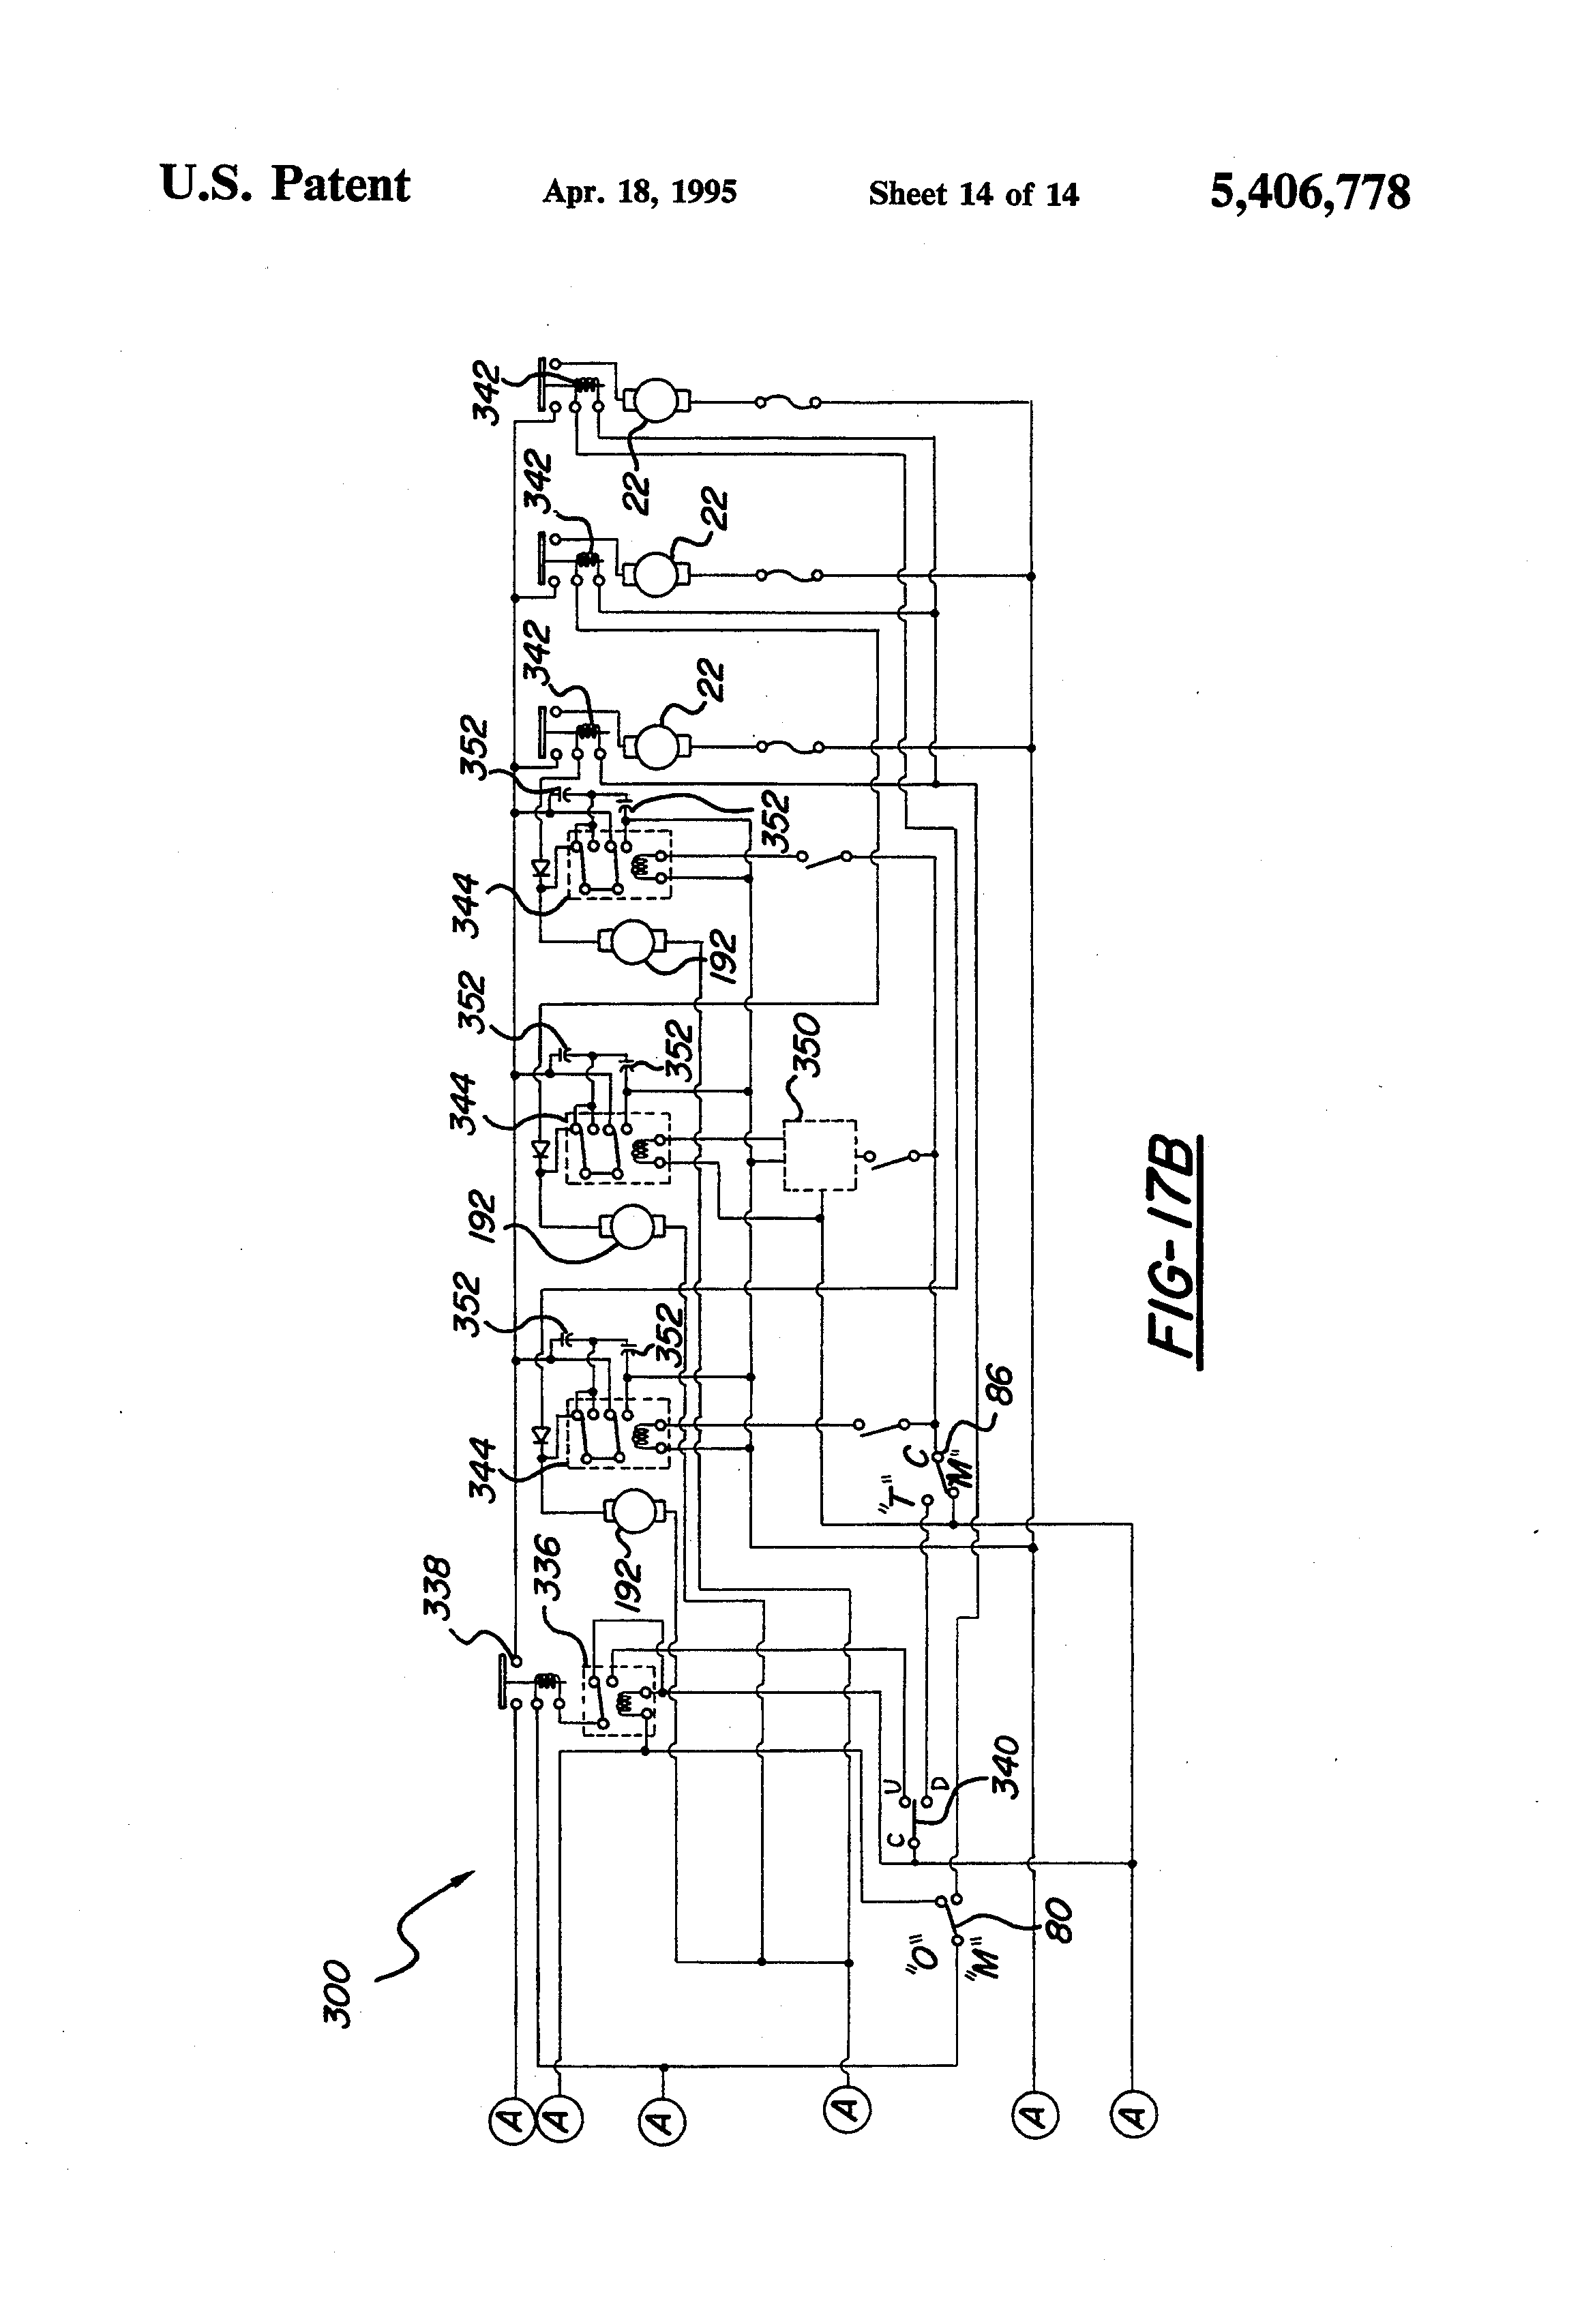 Dixie Chopper Wiring Diagram 49Cc Mini Chopper Wiring Diagram – Excel Mower Wiring Diagram